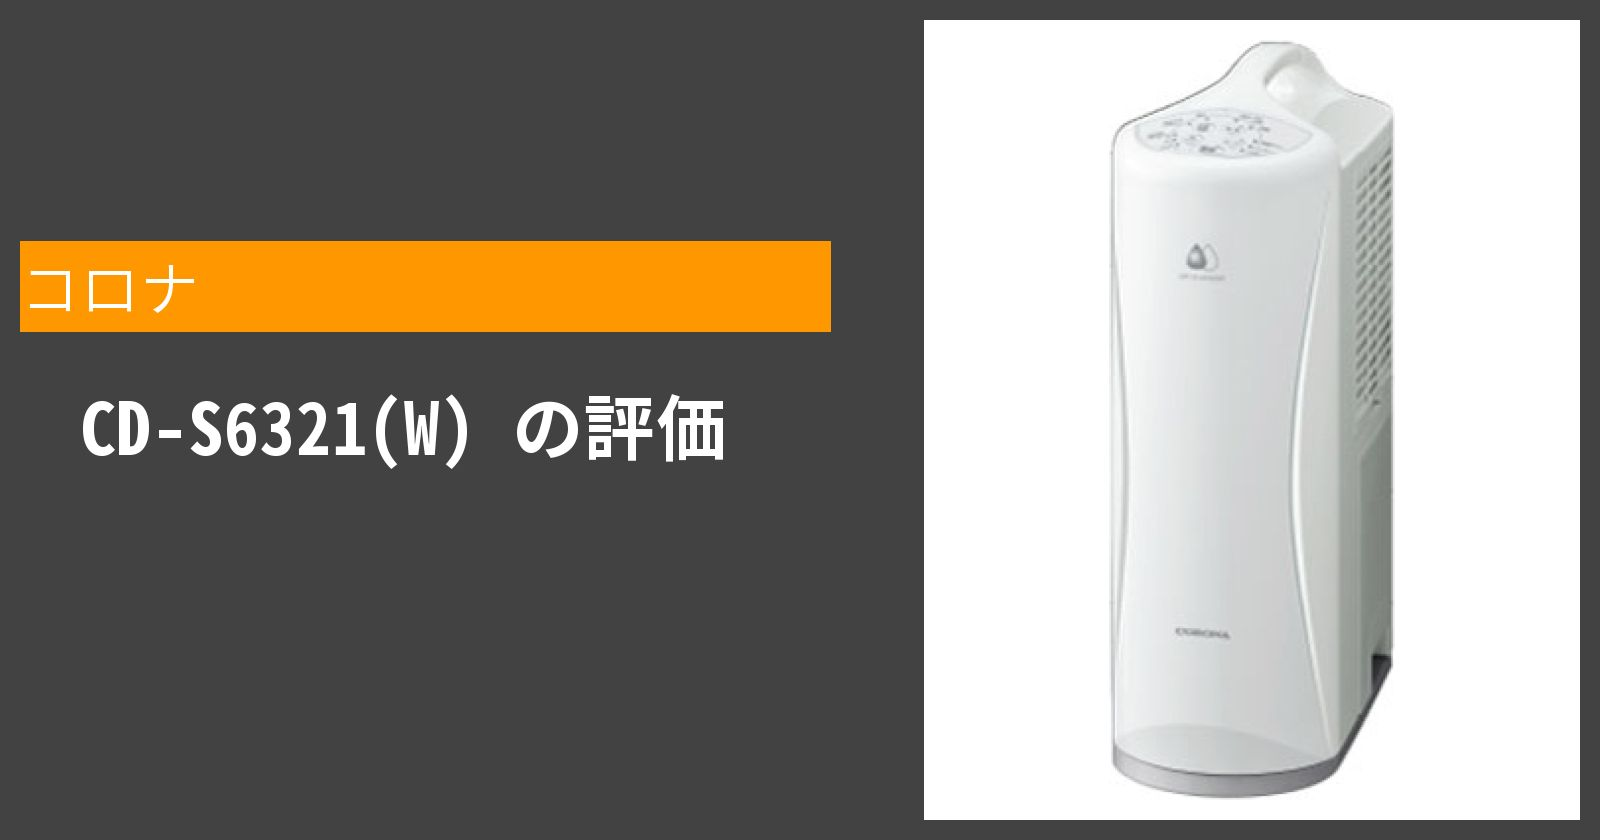 CD-S6321(W)を徹底評価